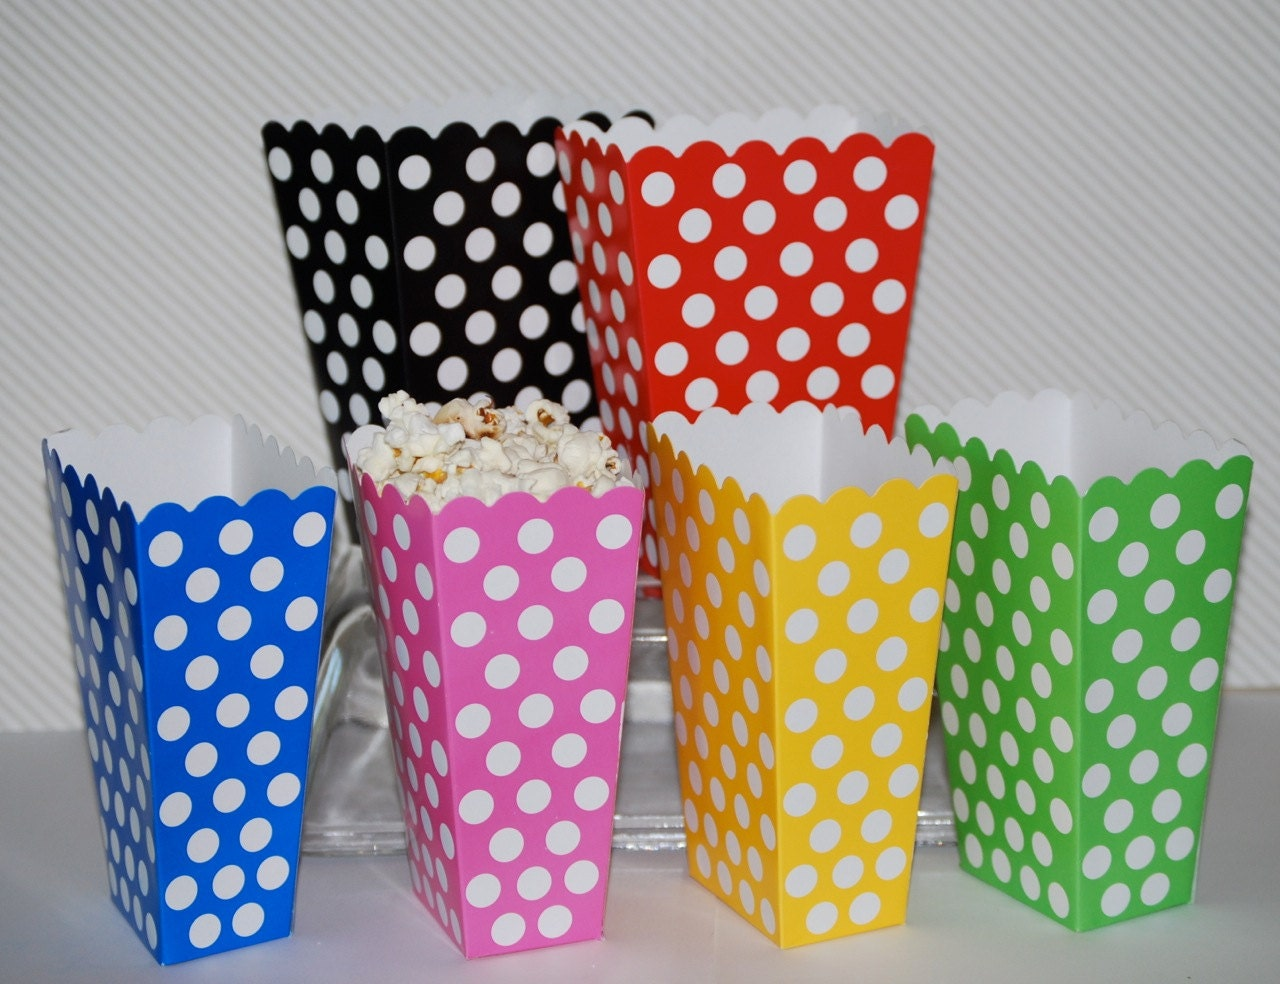 treat boxes polka dot popcorn boxes 8 count party box candy buffet treat box snack box gift box you pick colors